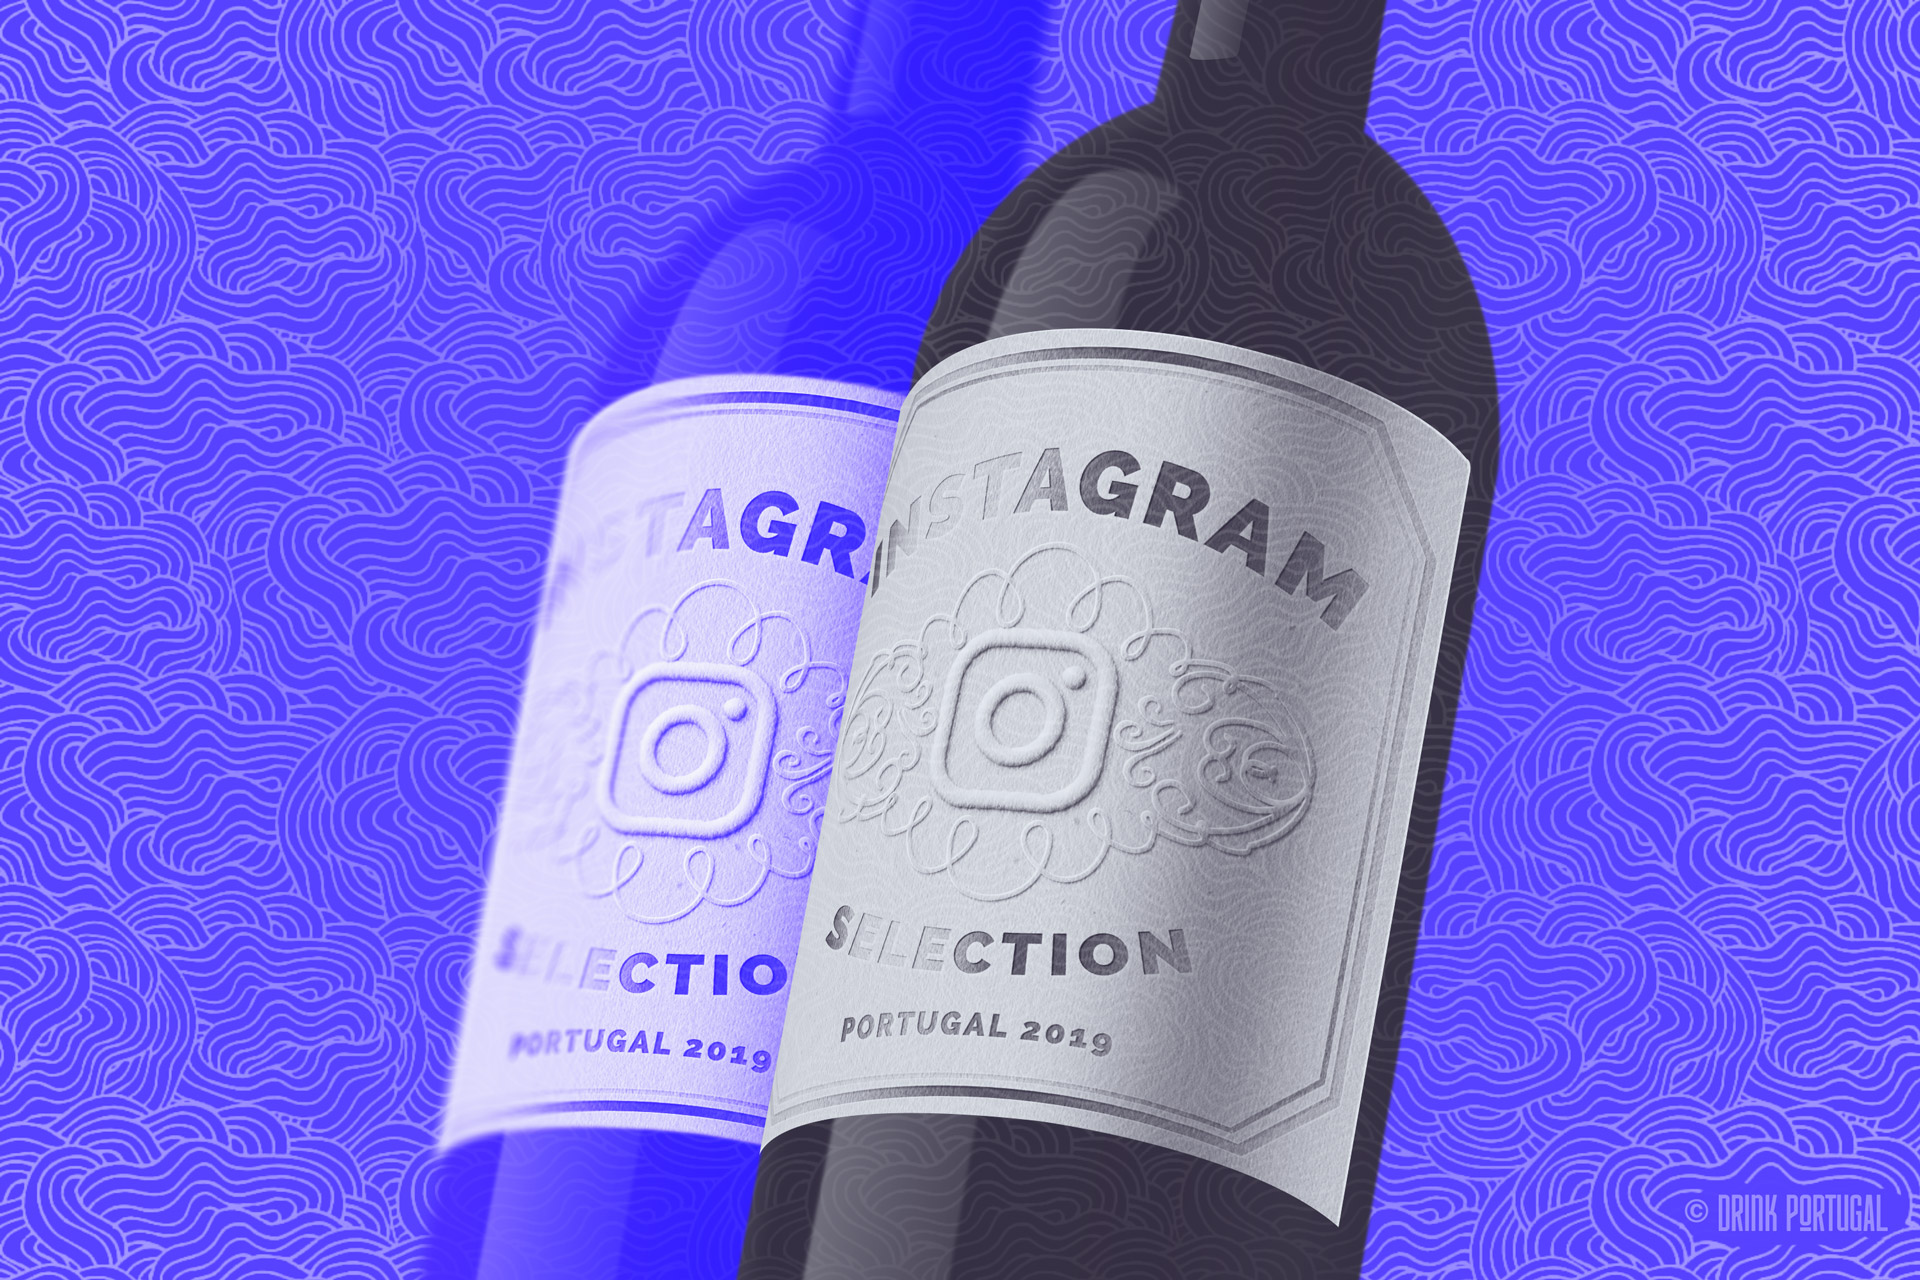 Portuguese Wine Instagram Accounts 2019